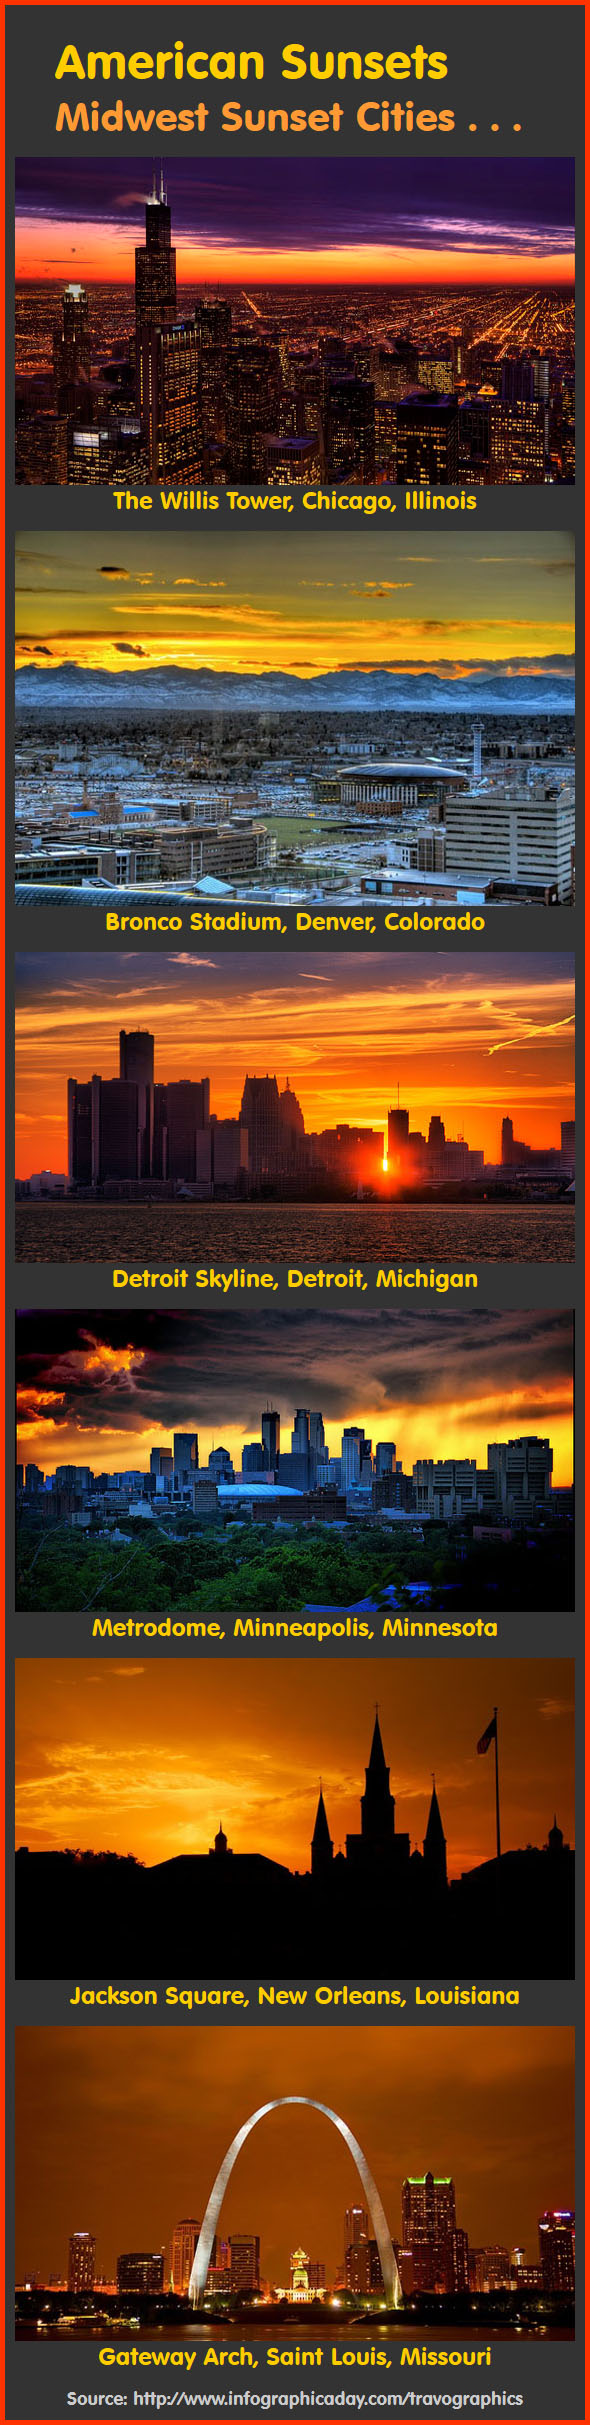 American Sunsets - Midwest Sunset Cities